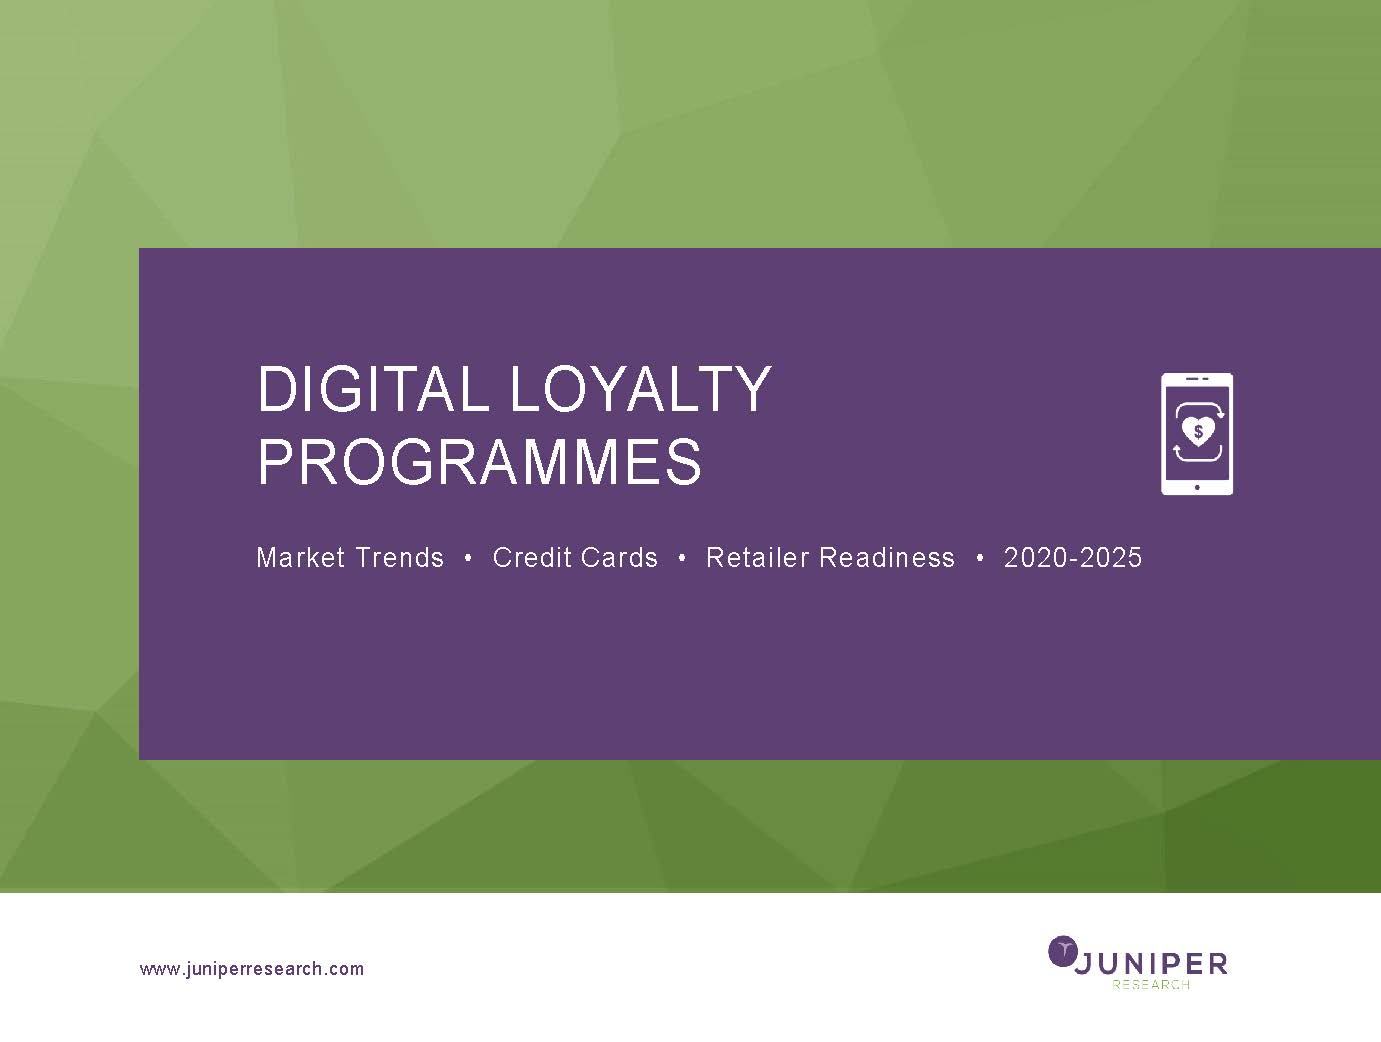 Digital Loyalty Programmes: Market Trends, Credit Cards & Retailer Readiness 2020-2025